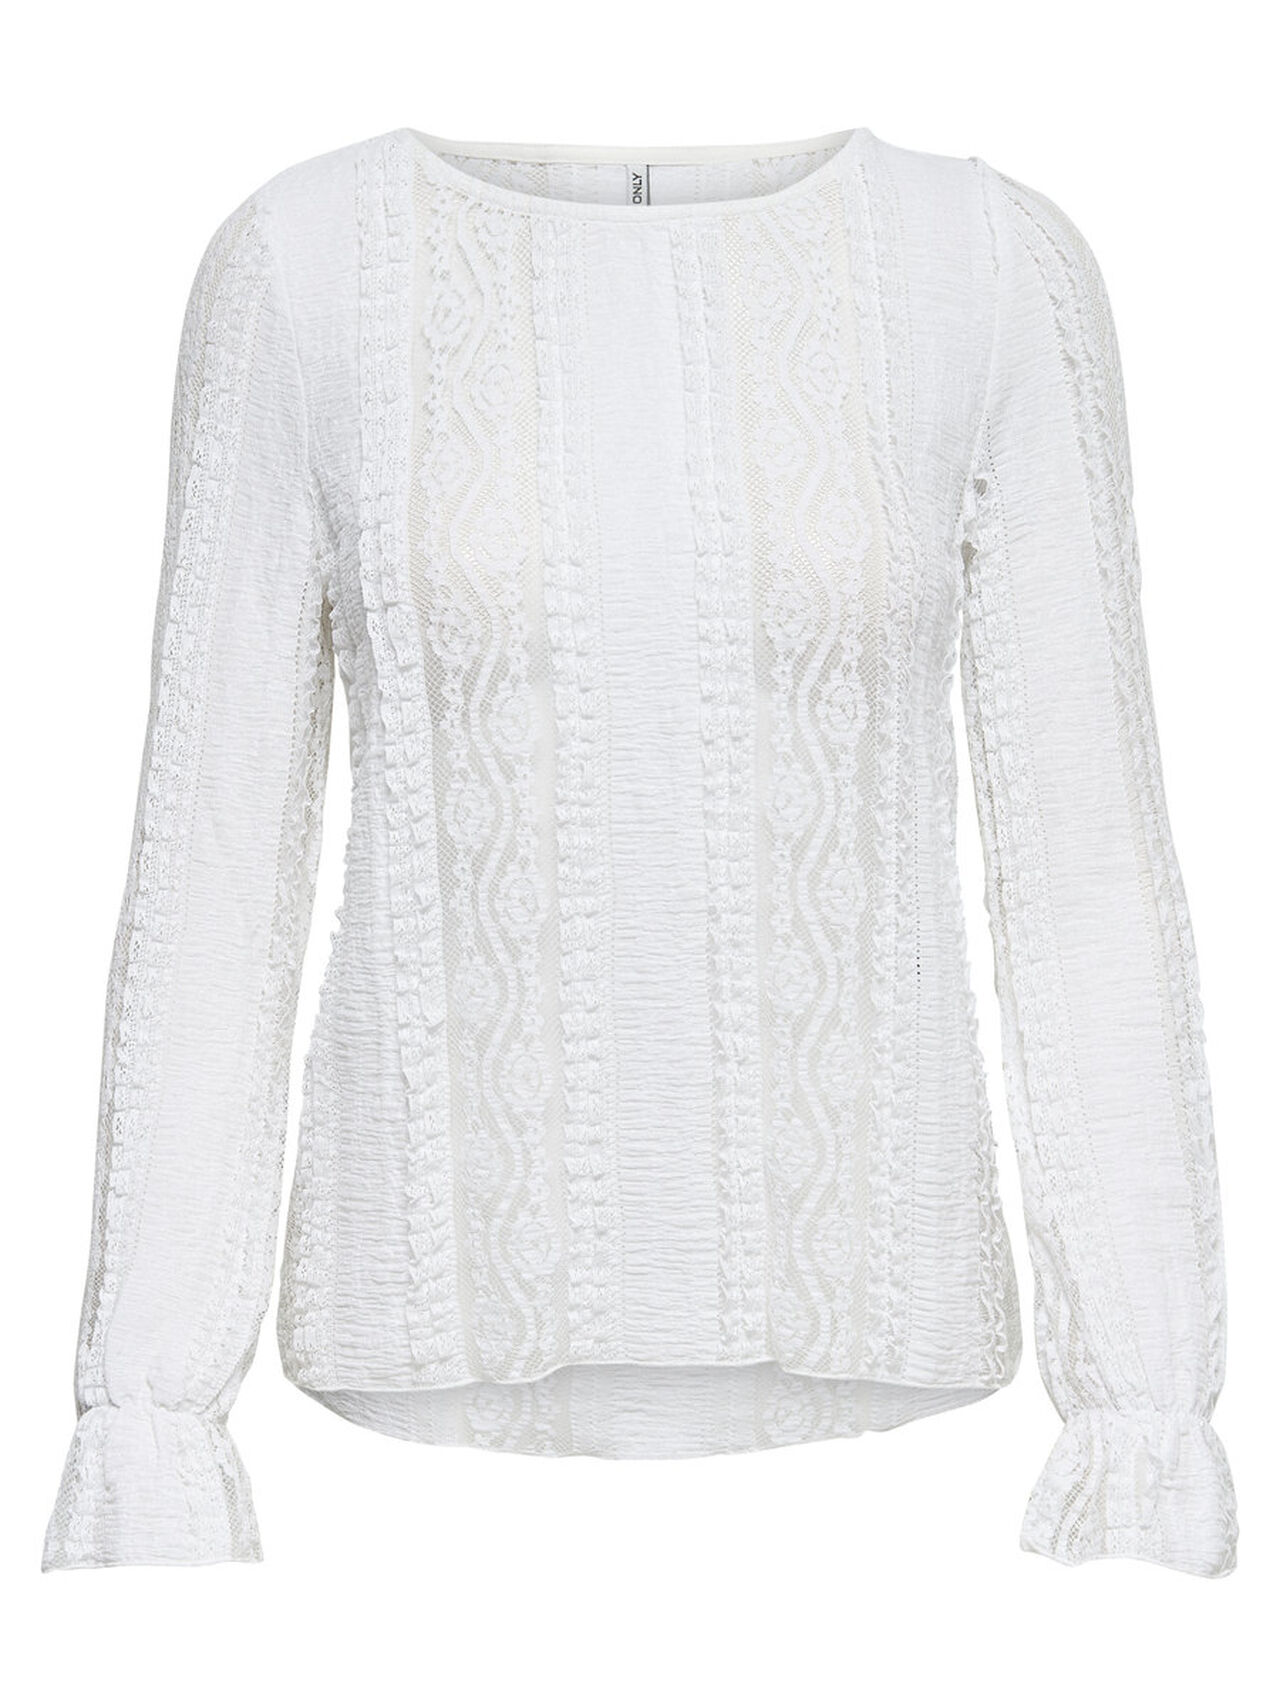 ONLY Lace Blouse Women White